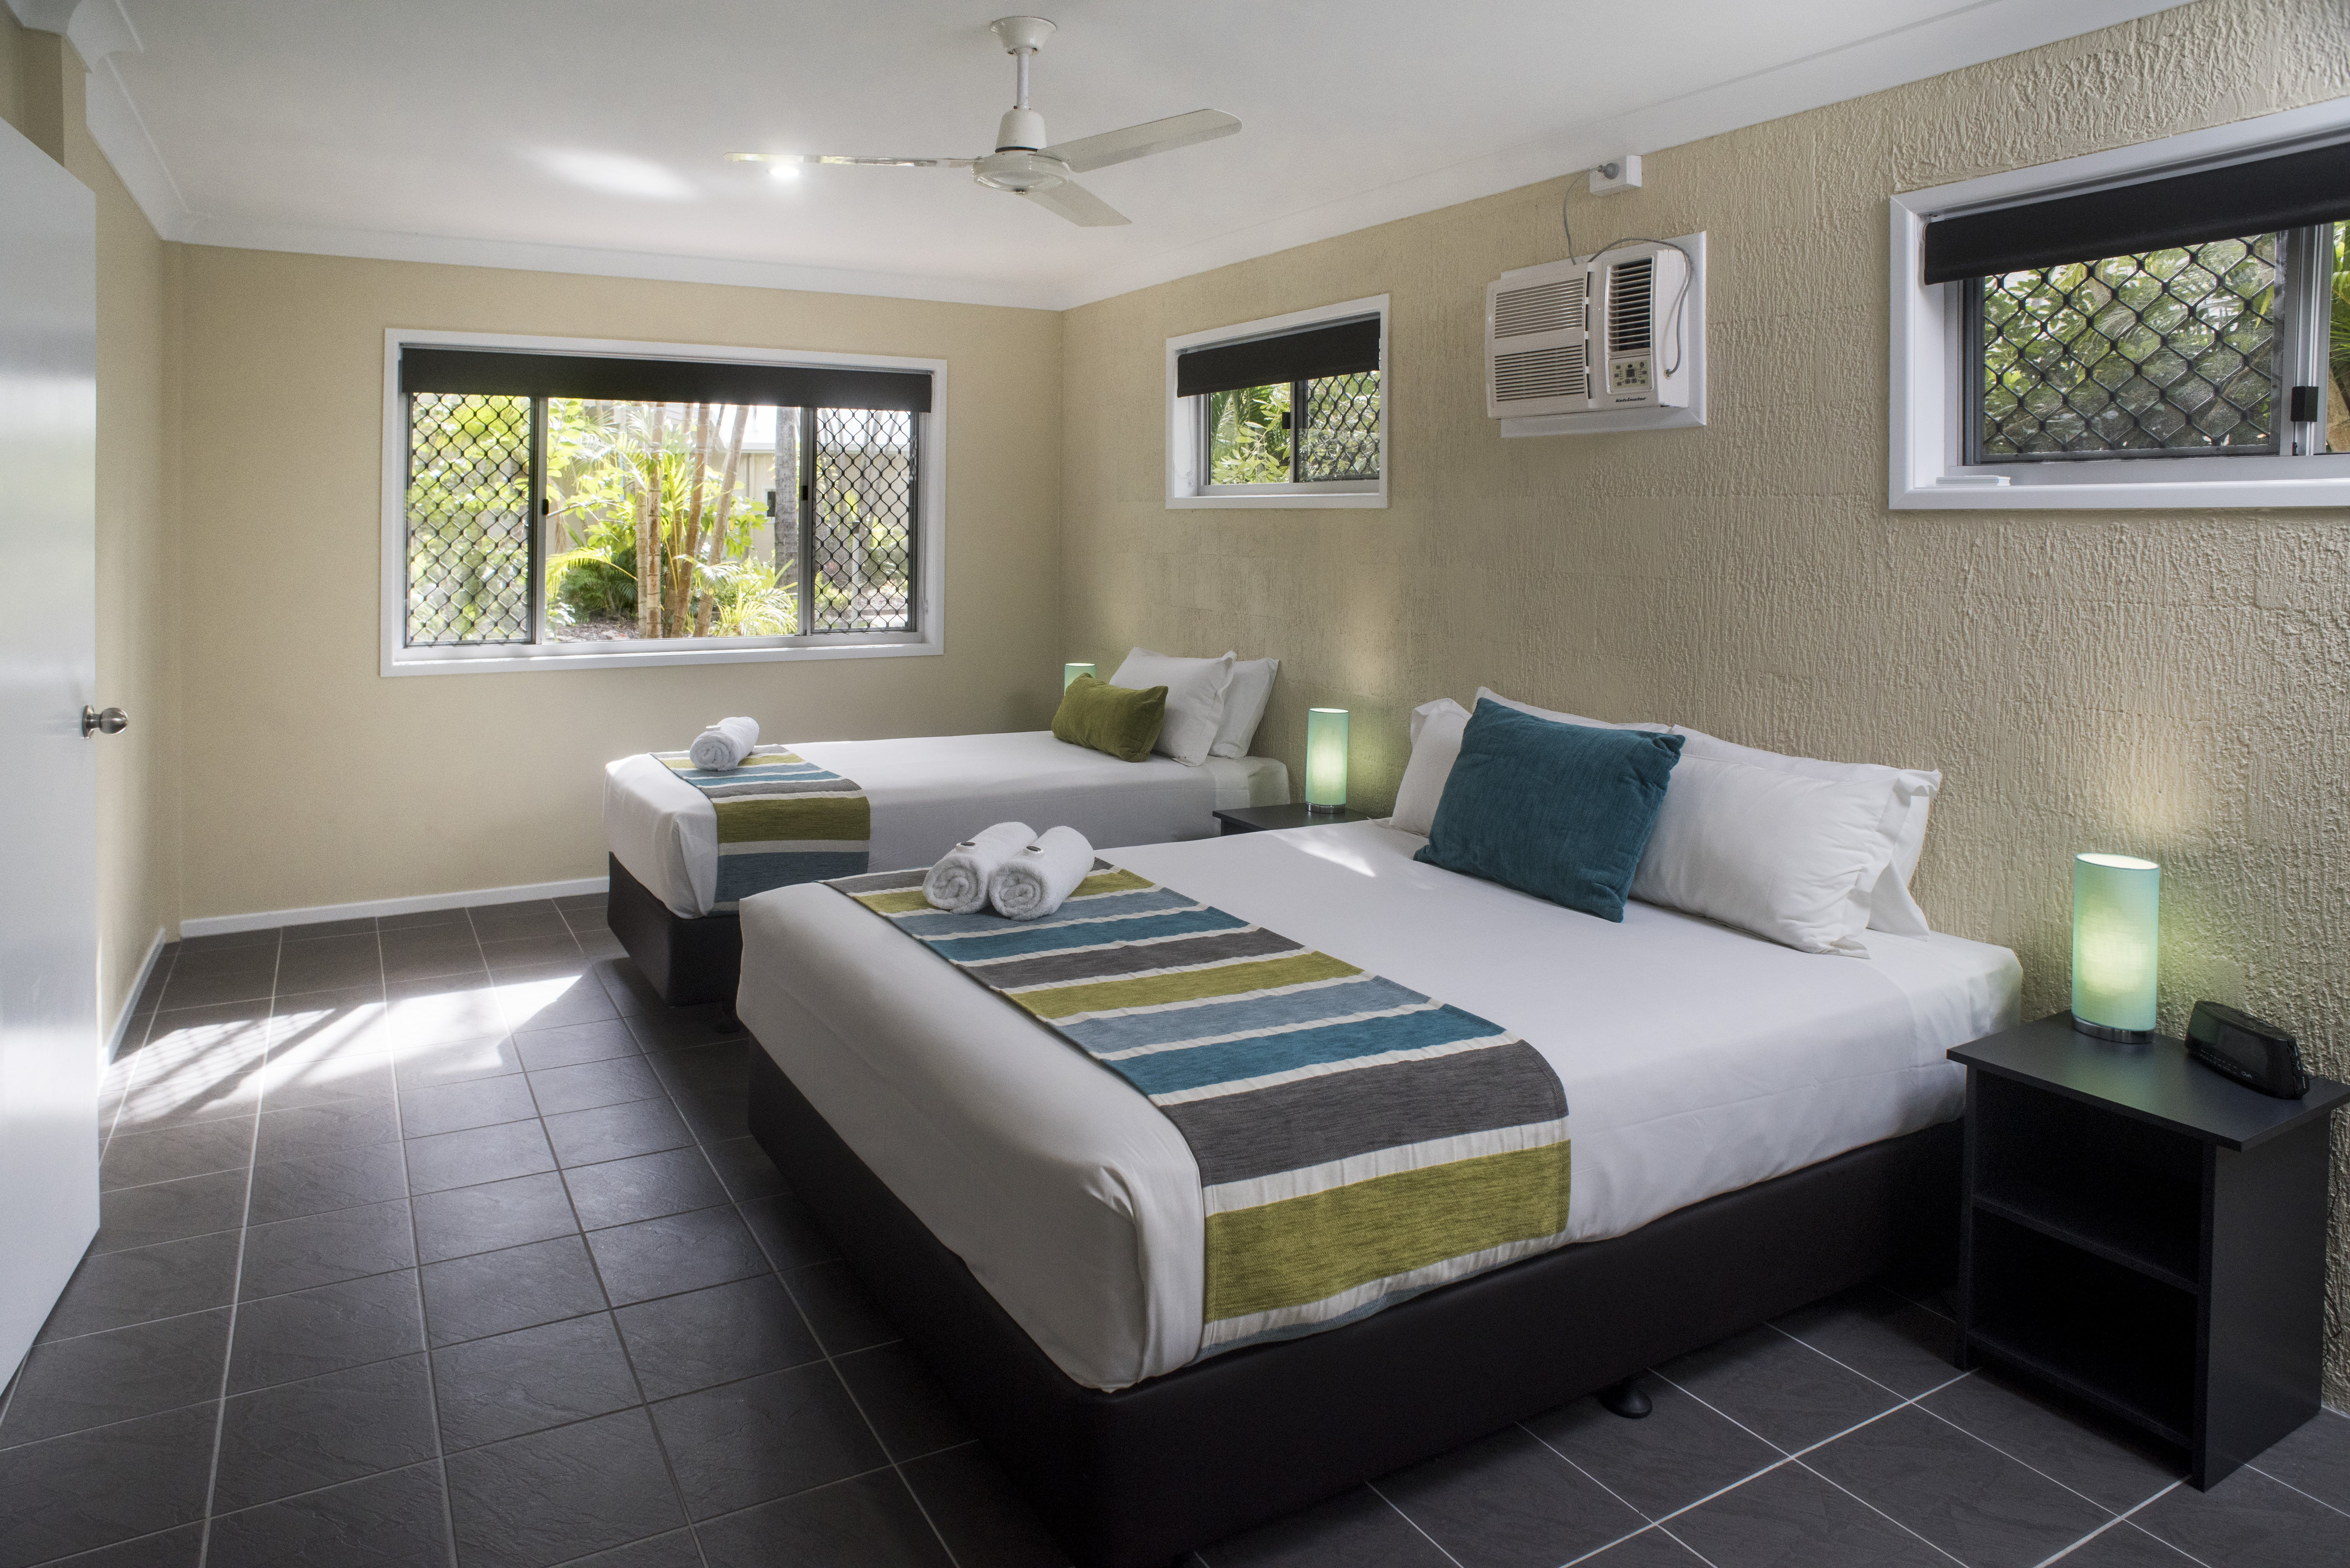 Ground floor 1 bedroom apartment on Shelly Beach